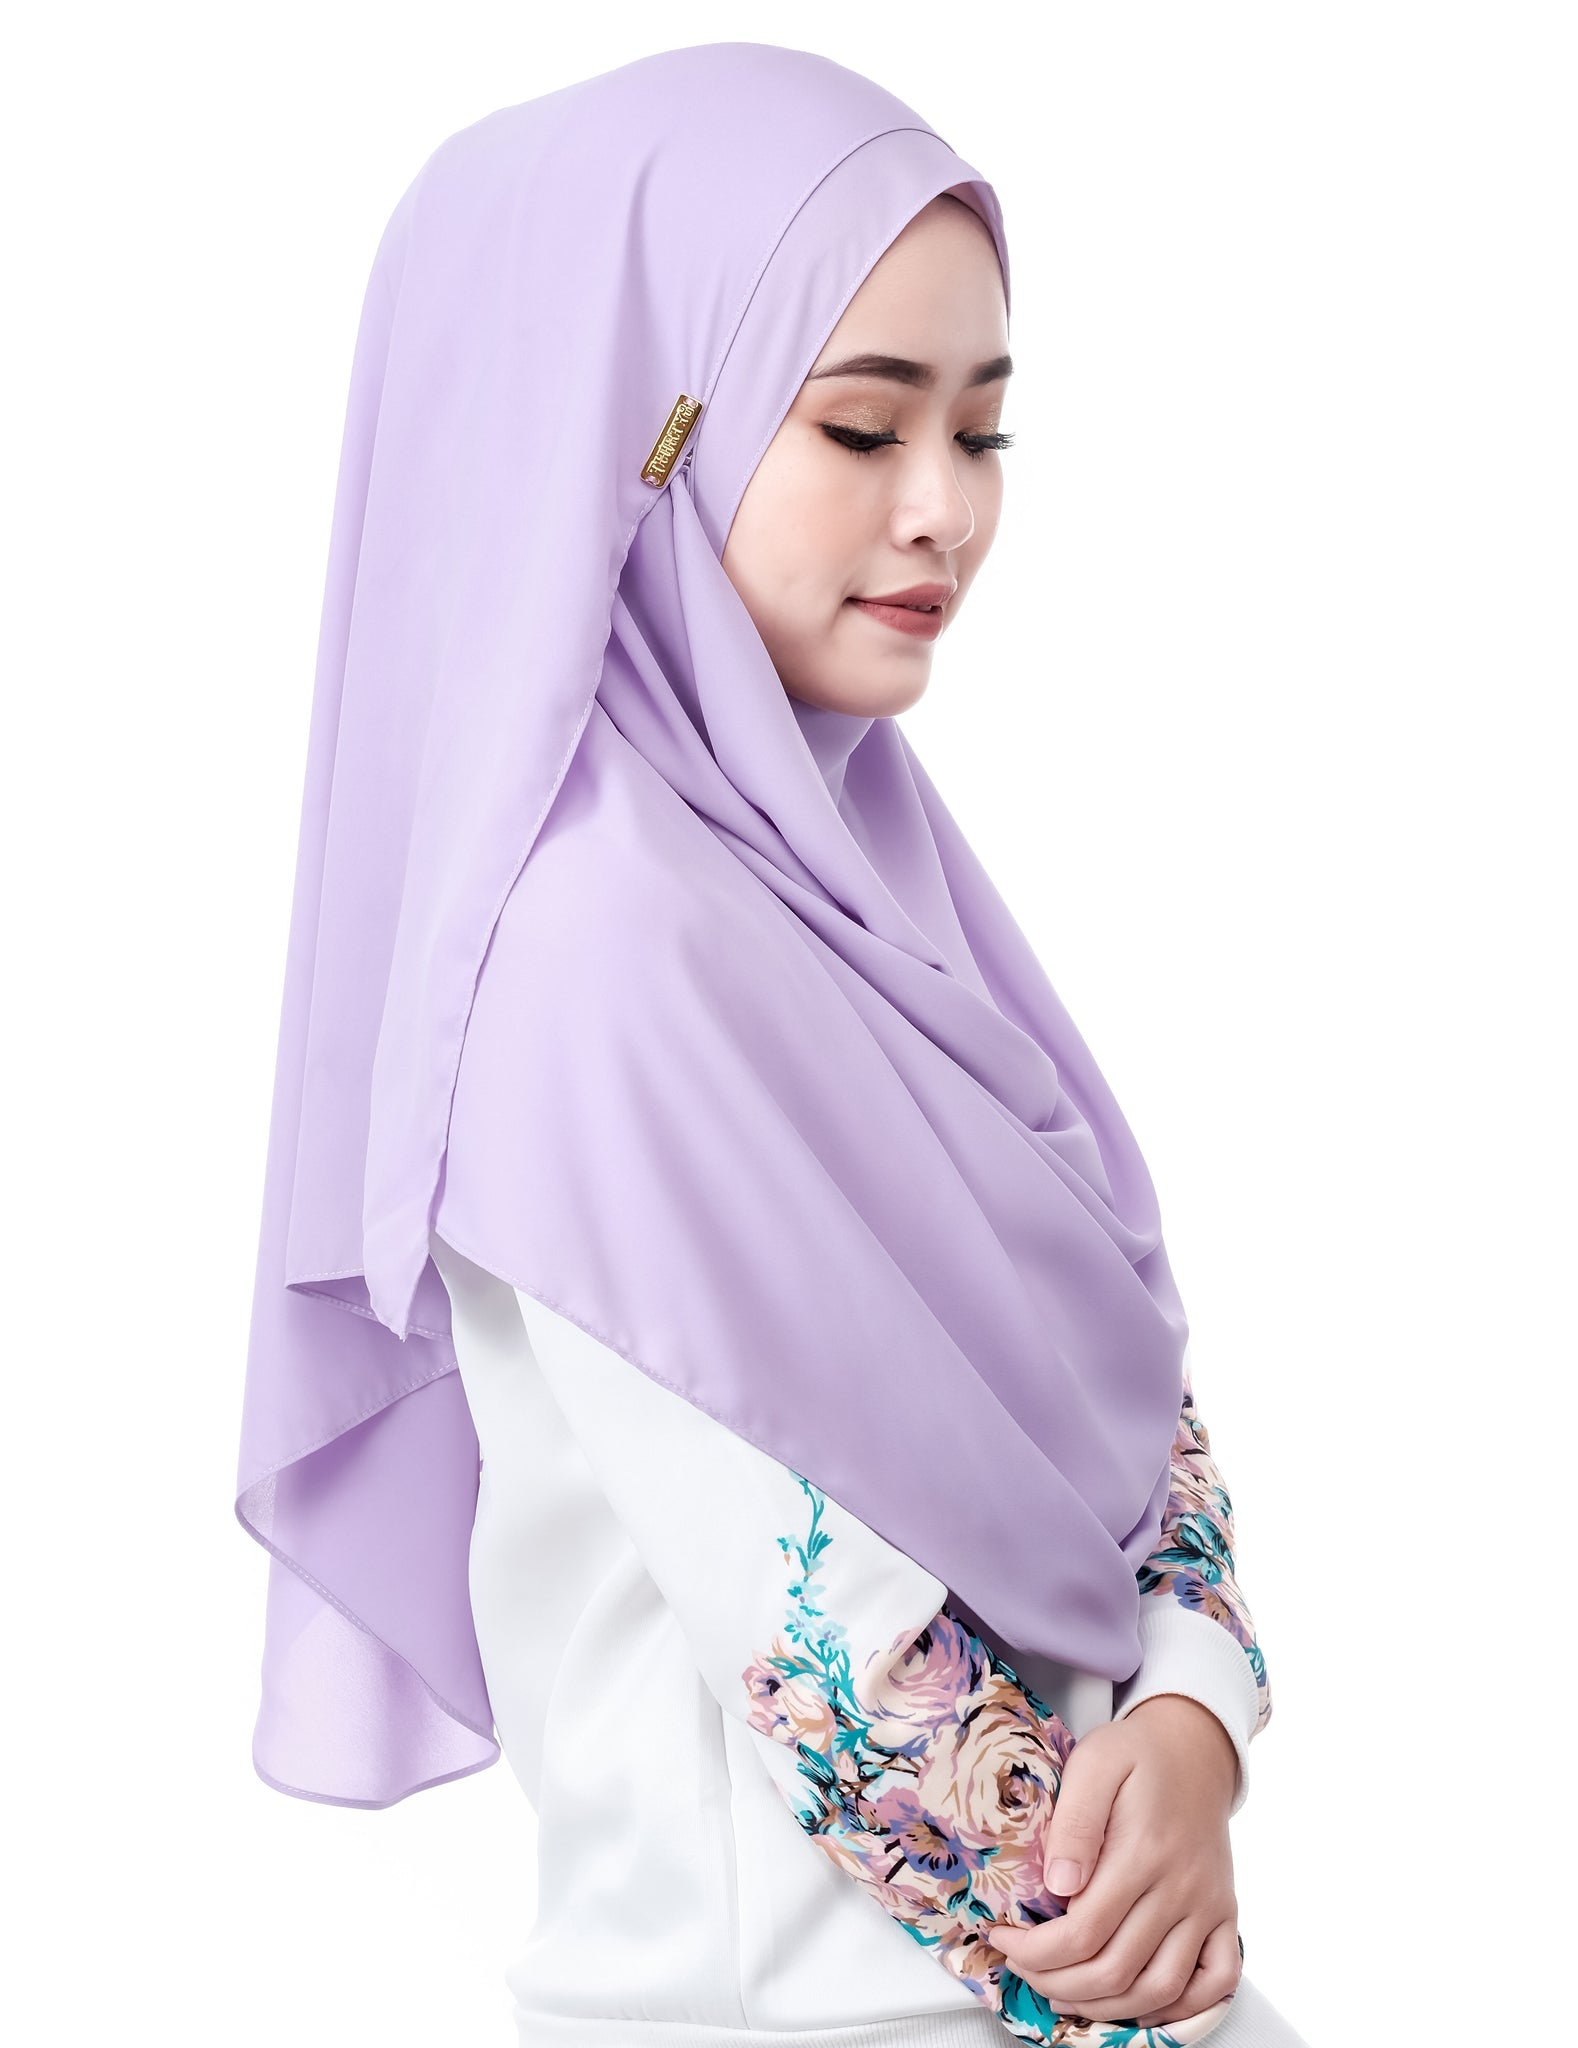 Mariqa Basic in Lavender by Thiirty8. The Reversible Instant Shawl. Made of Korean Crepe.